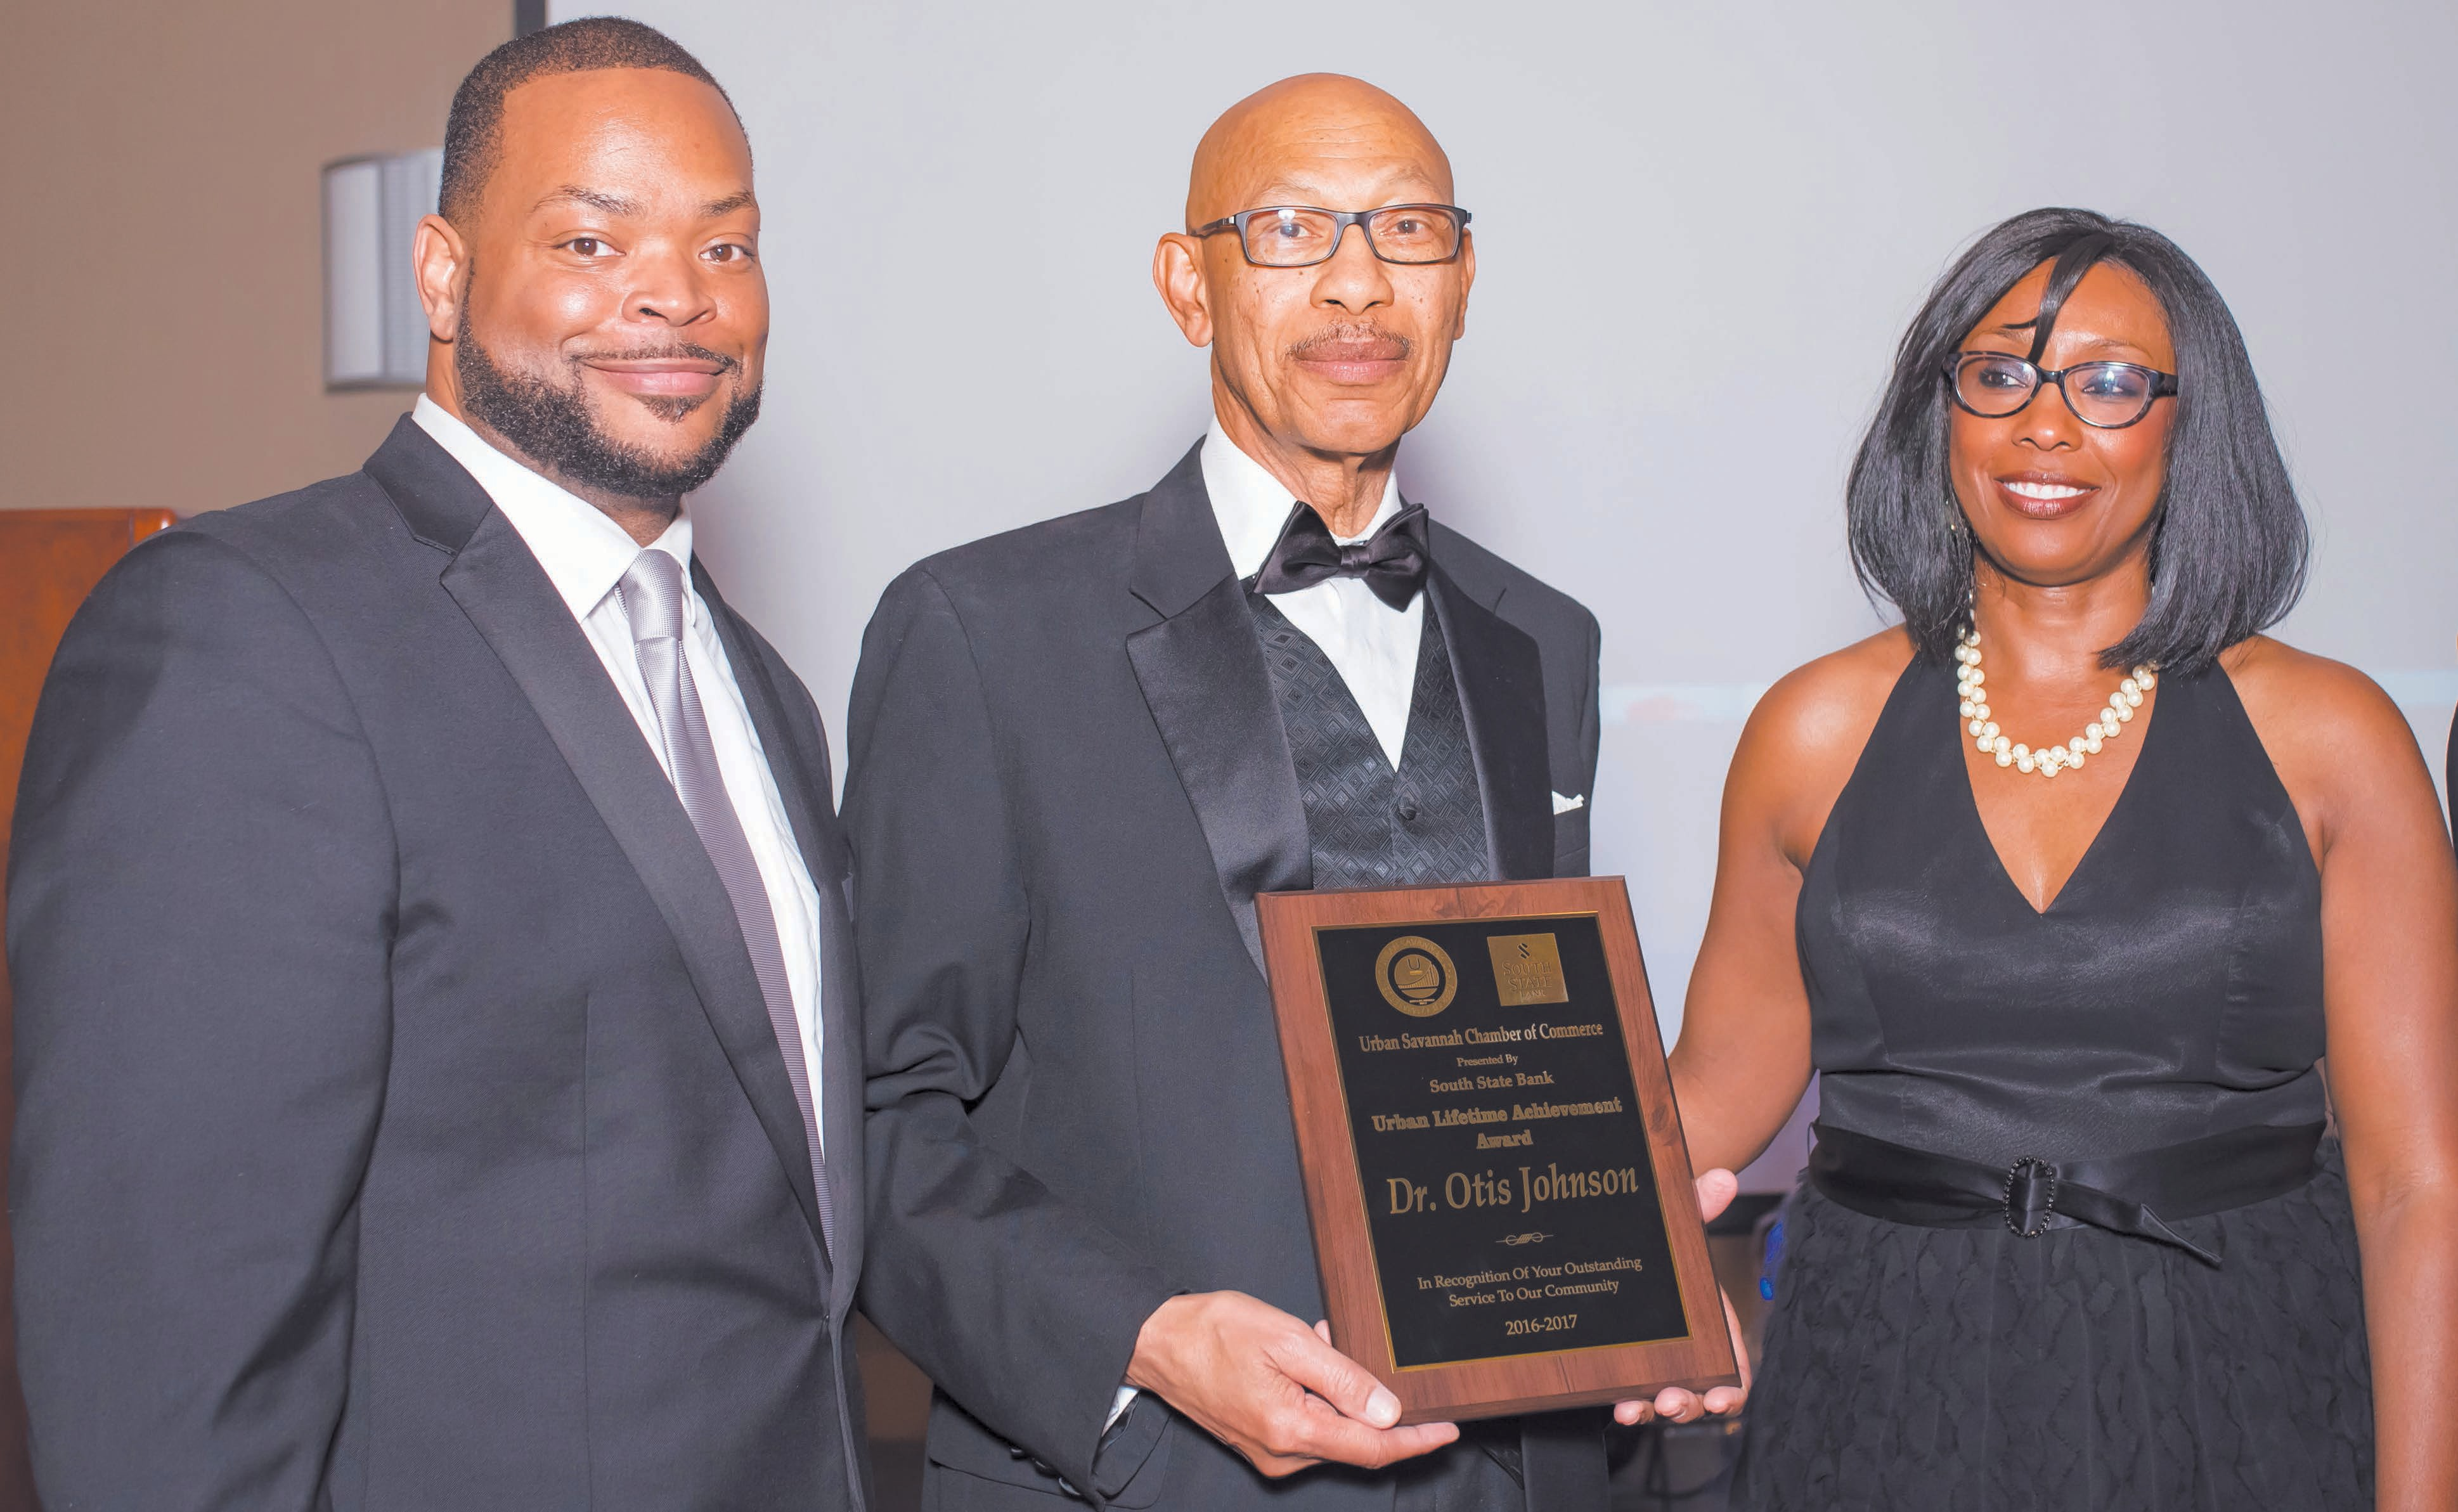 John Voner, Dr. Otis Johnson and Eula Parker